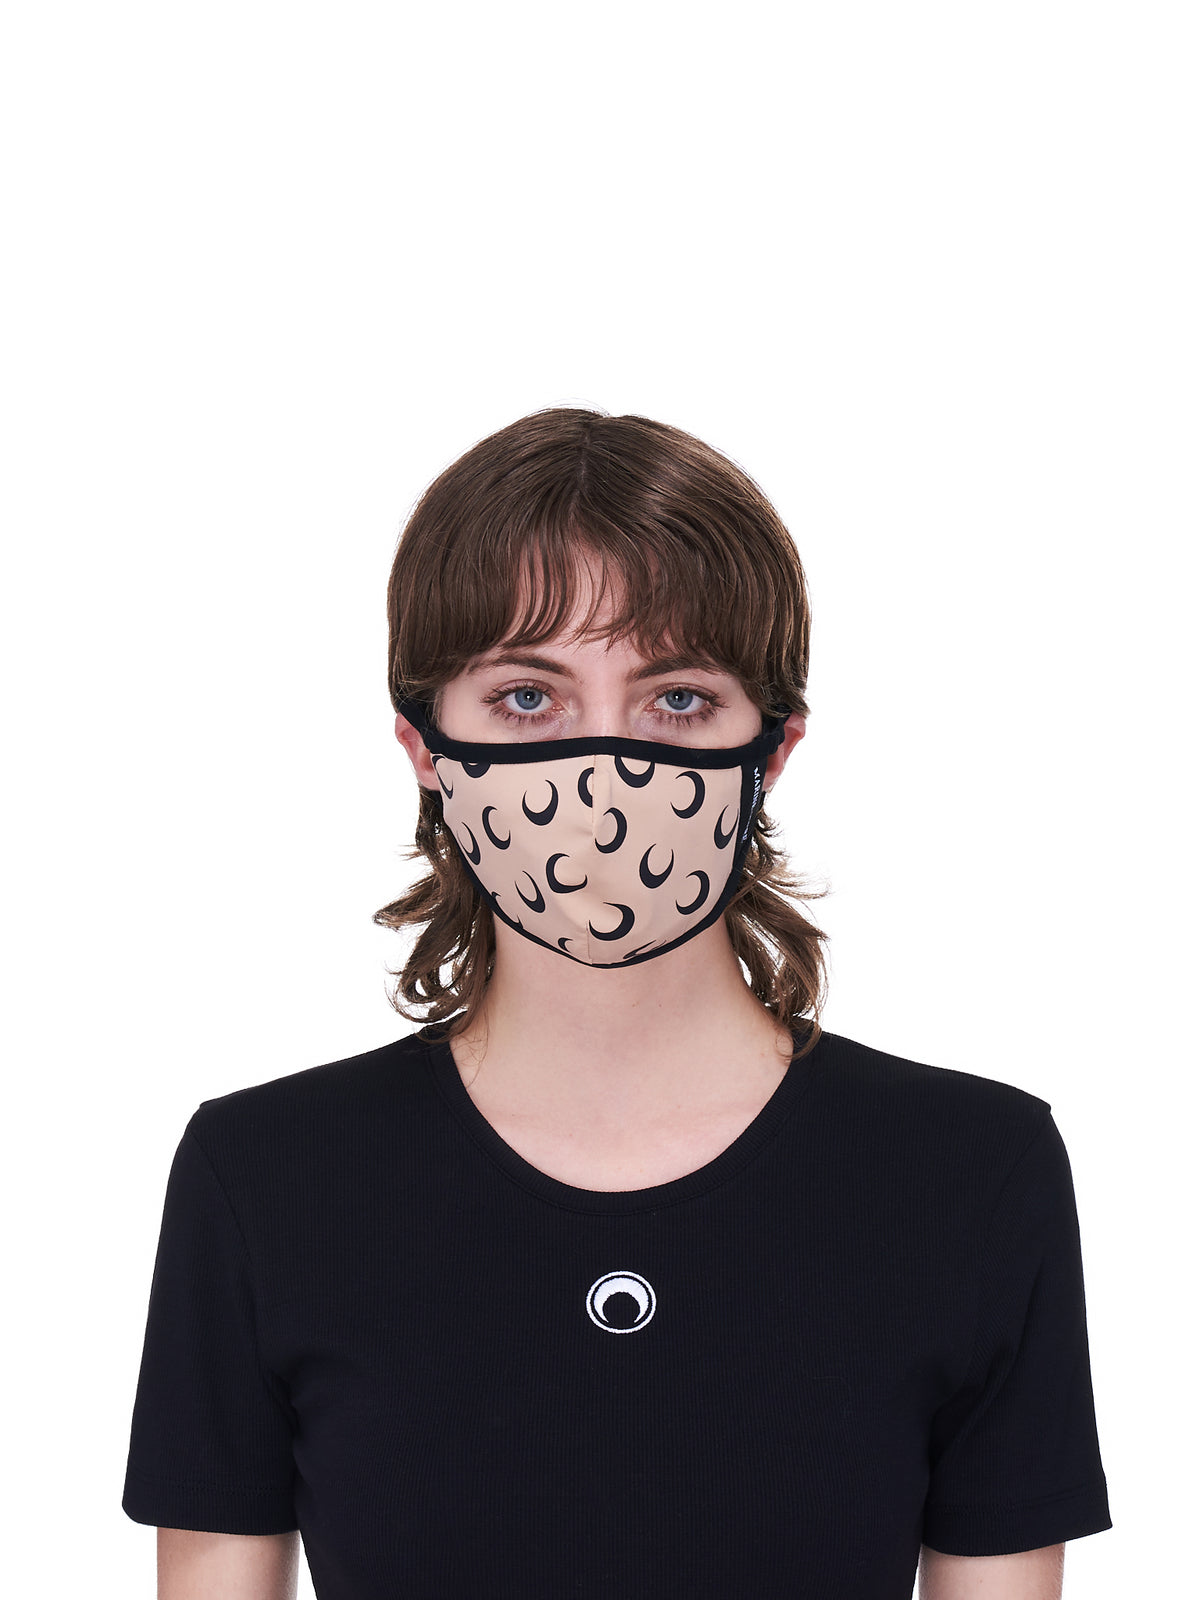 Tan & Black Allover Moon Daily Wear Mask (A059ICONX-JERPA0001-TAN-BLACK)